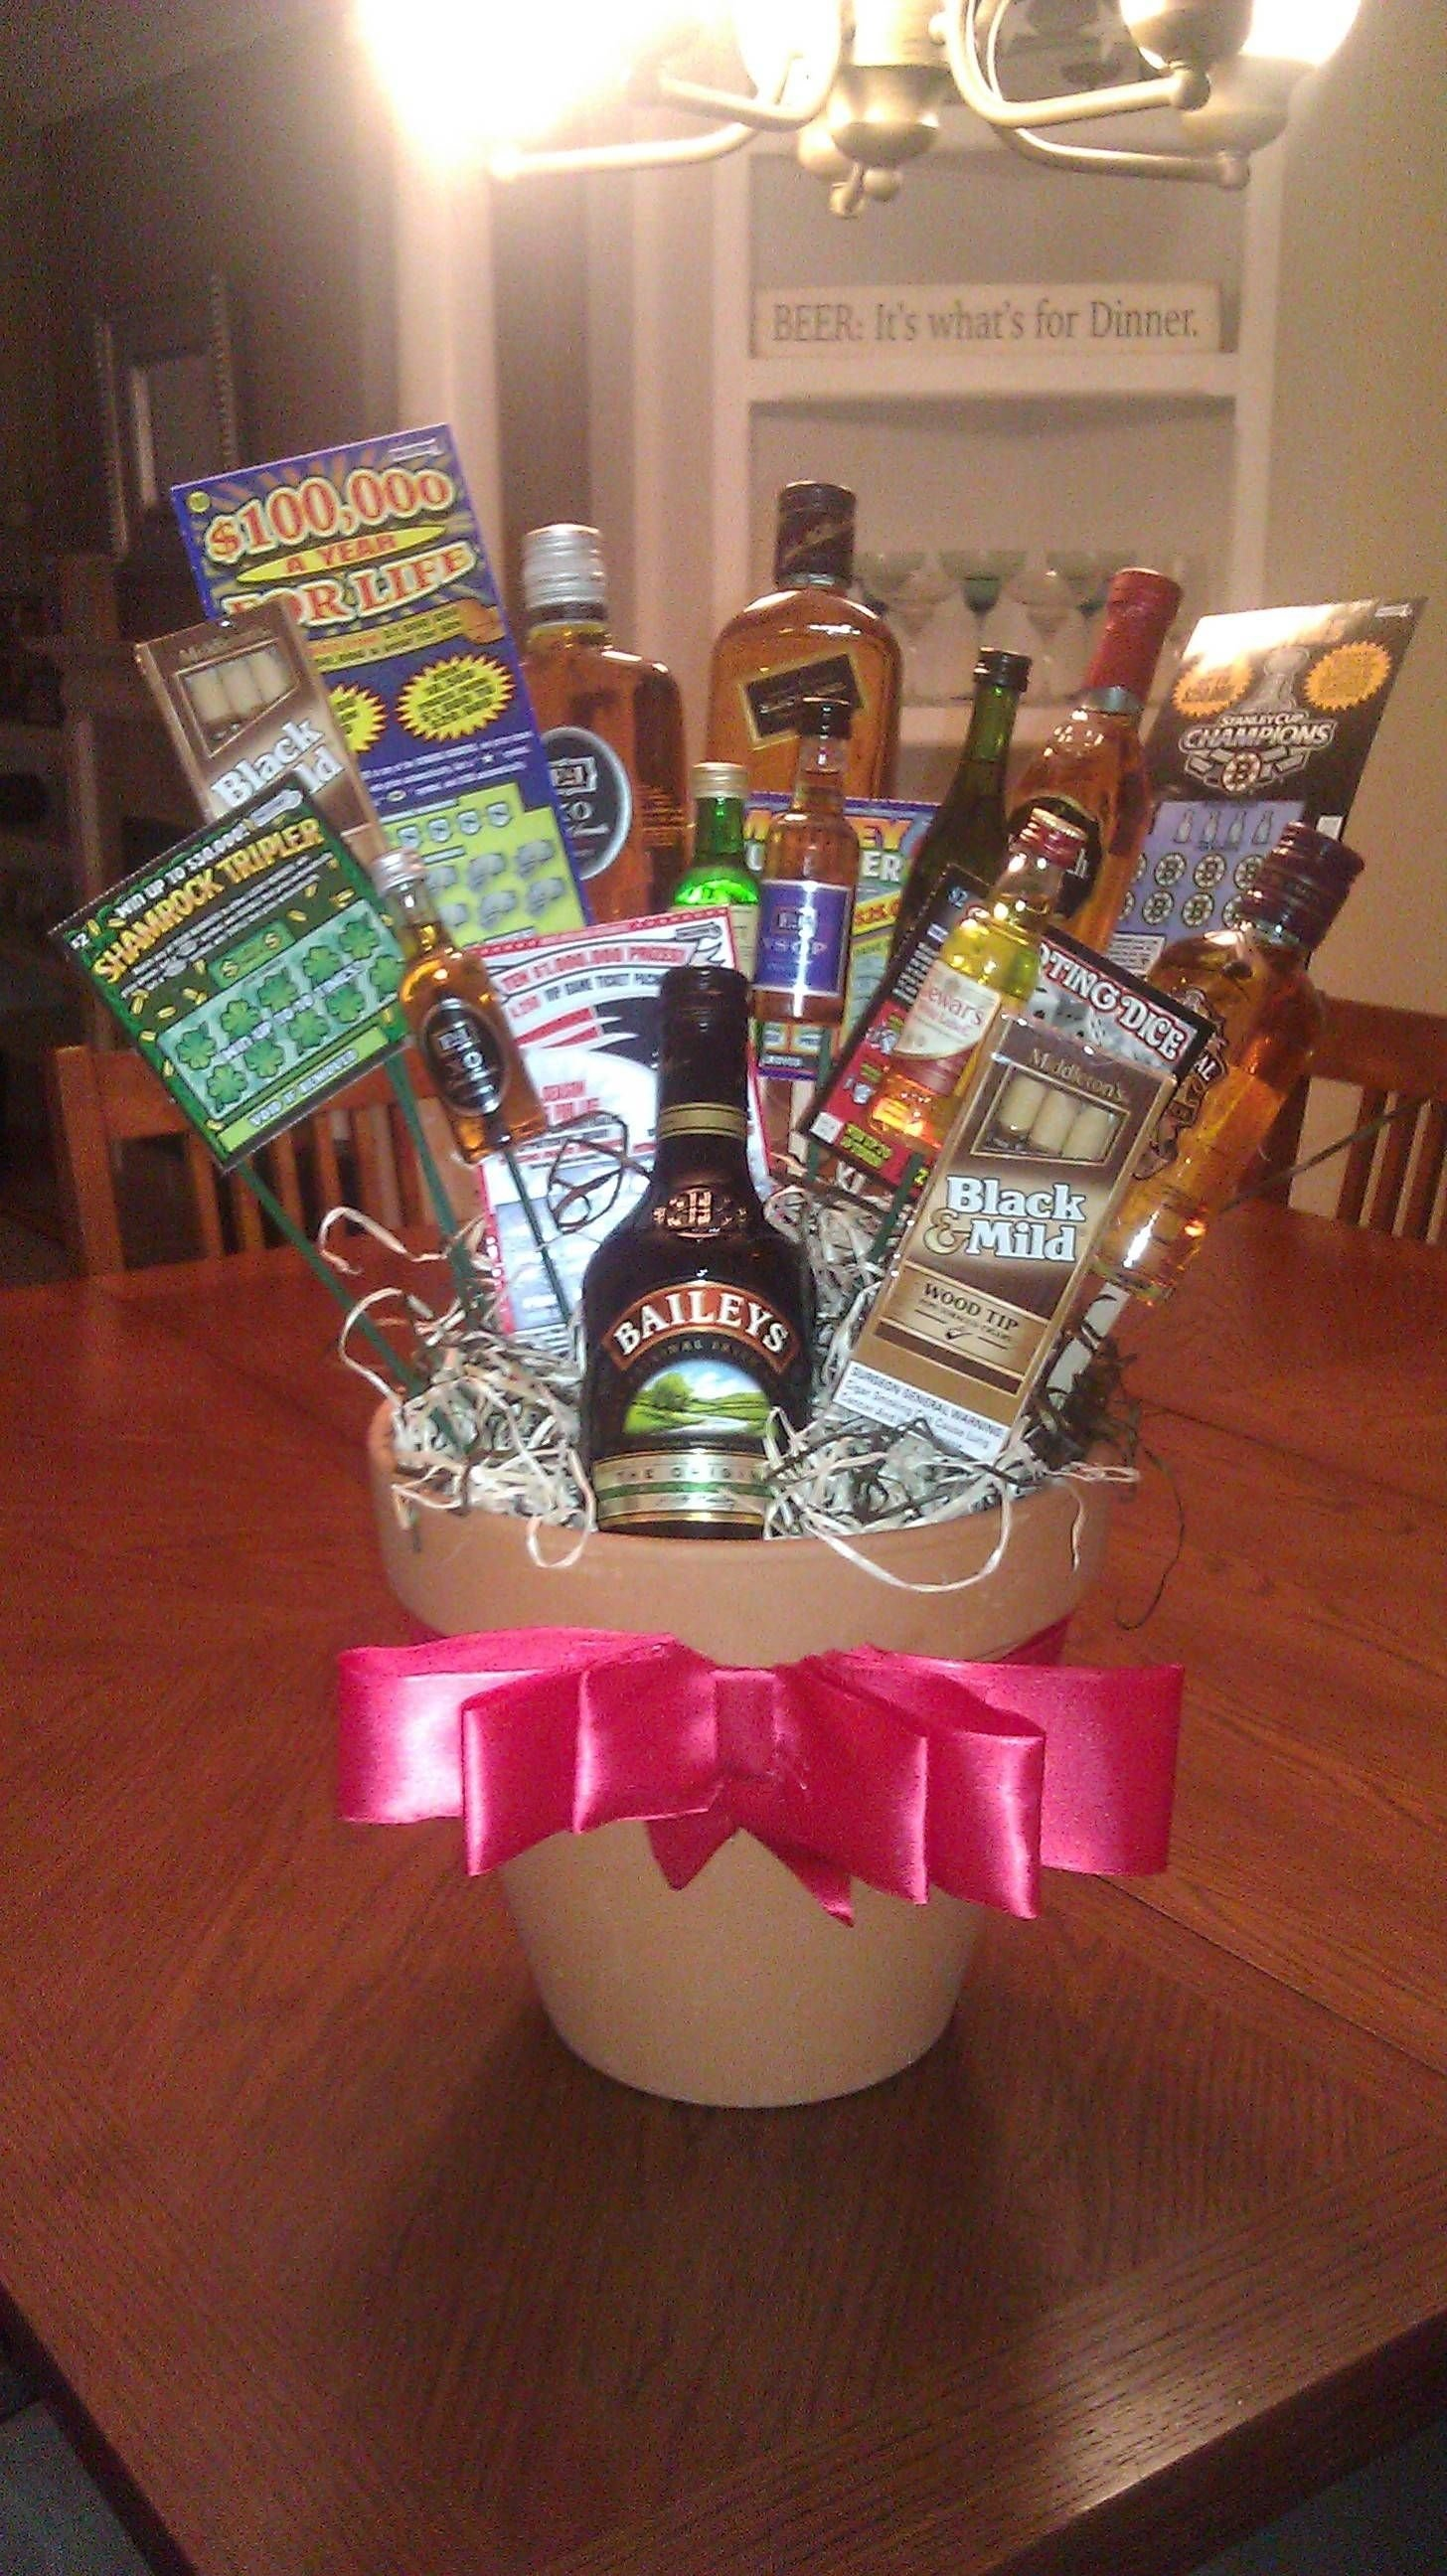 10 Cute Gift Baskets For Men Ideas the most awesome images on the internet man bouquet men gifts and 1 2020